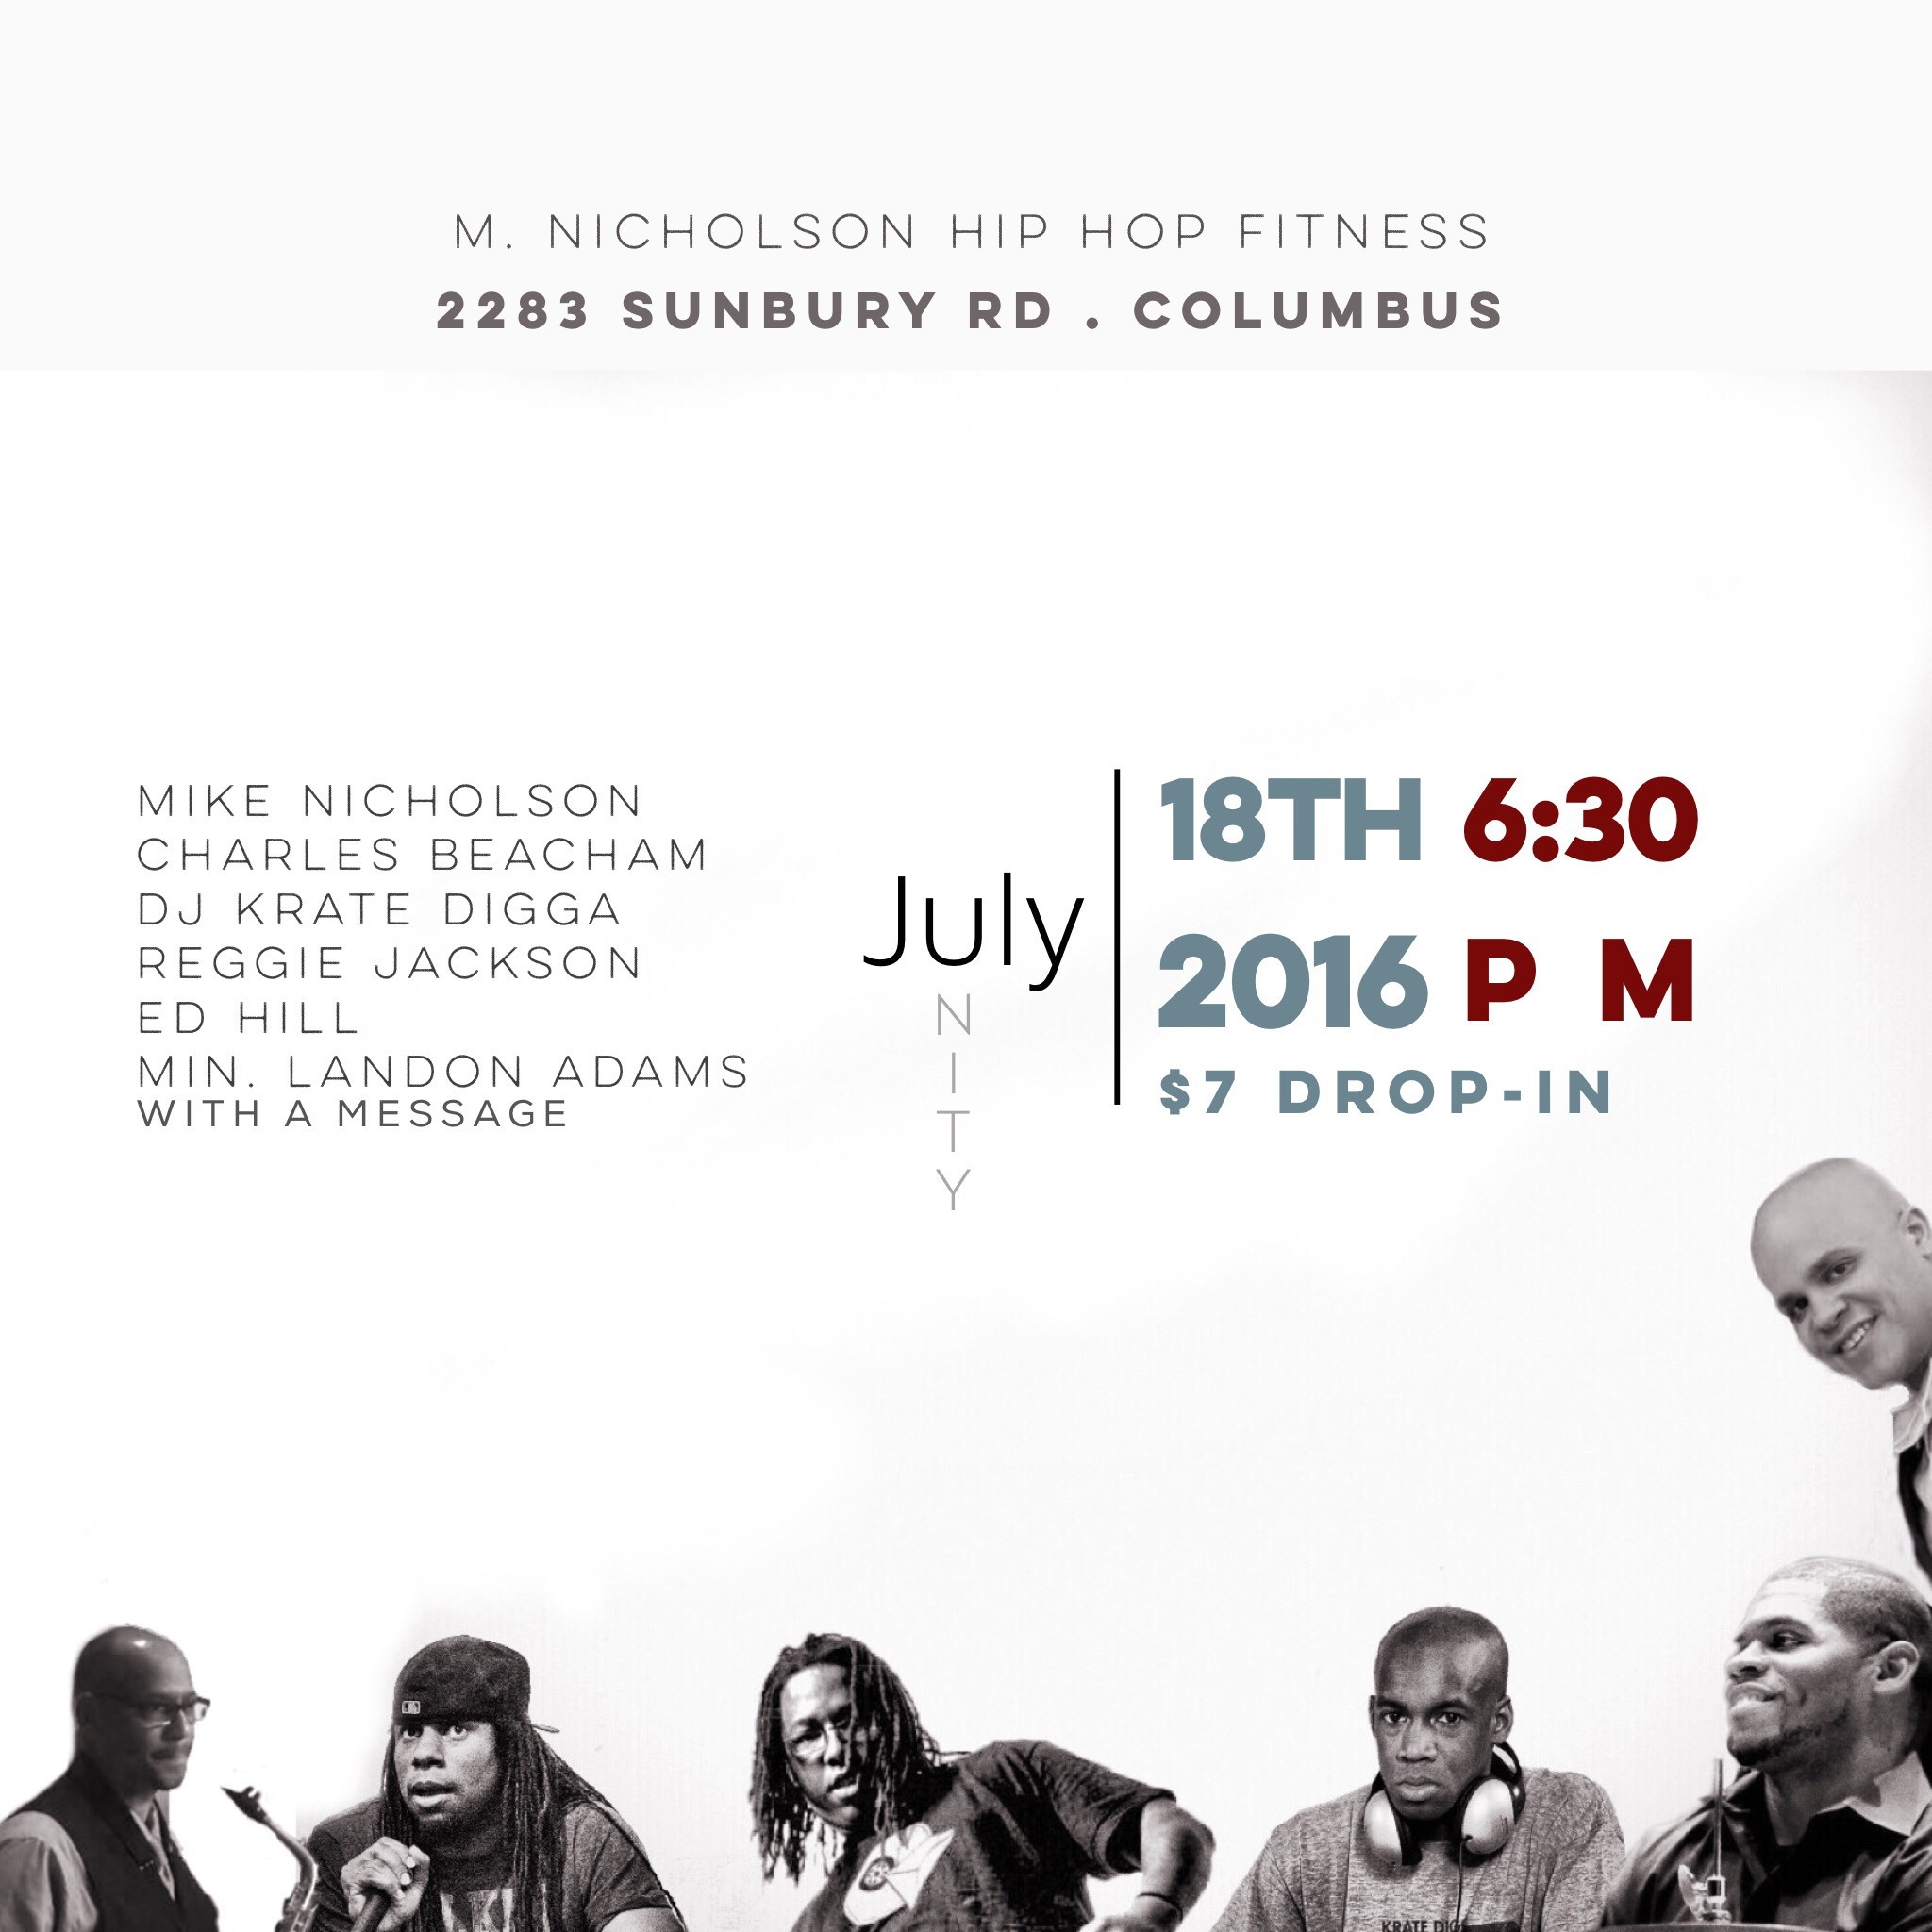 M. Nicholson hip hop fitness and unity